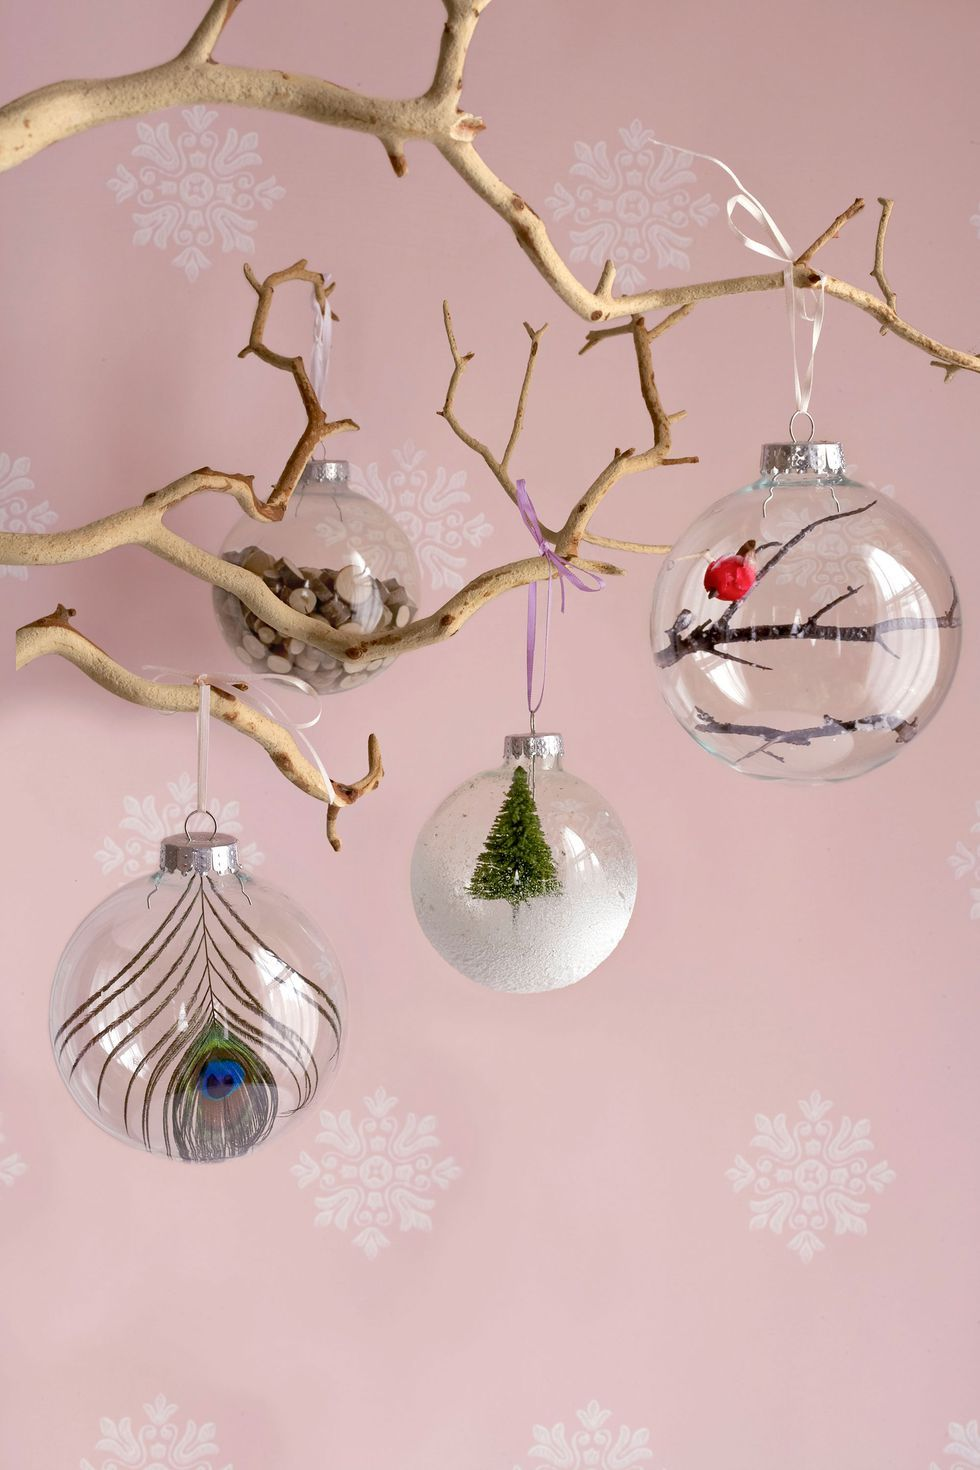 50 Diy Christmas Ornaments Best Homemade Christmas Ornaments 2020